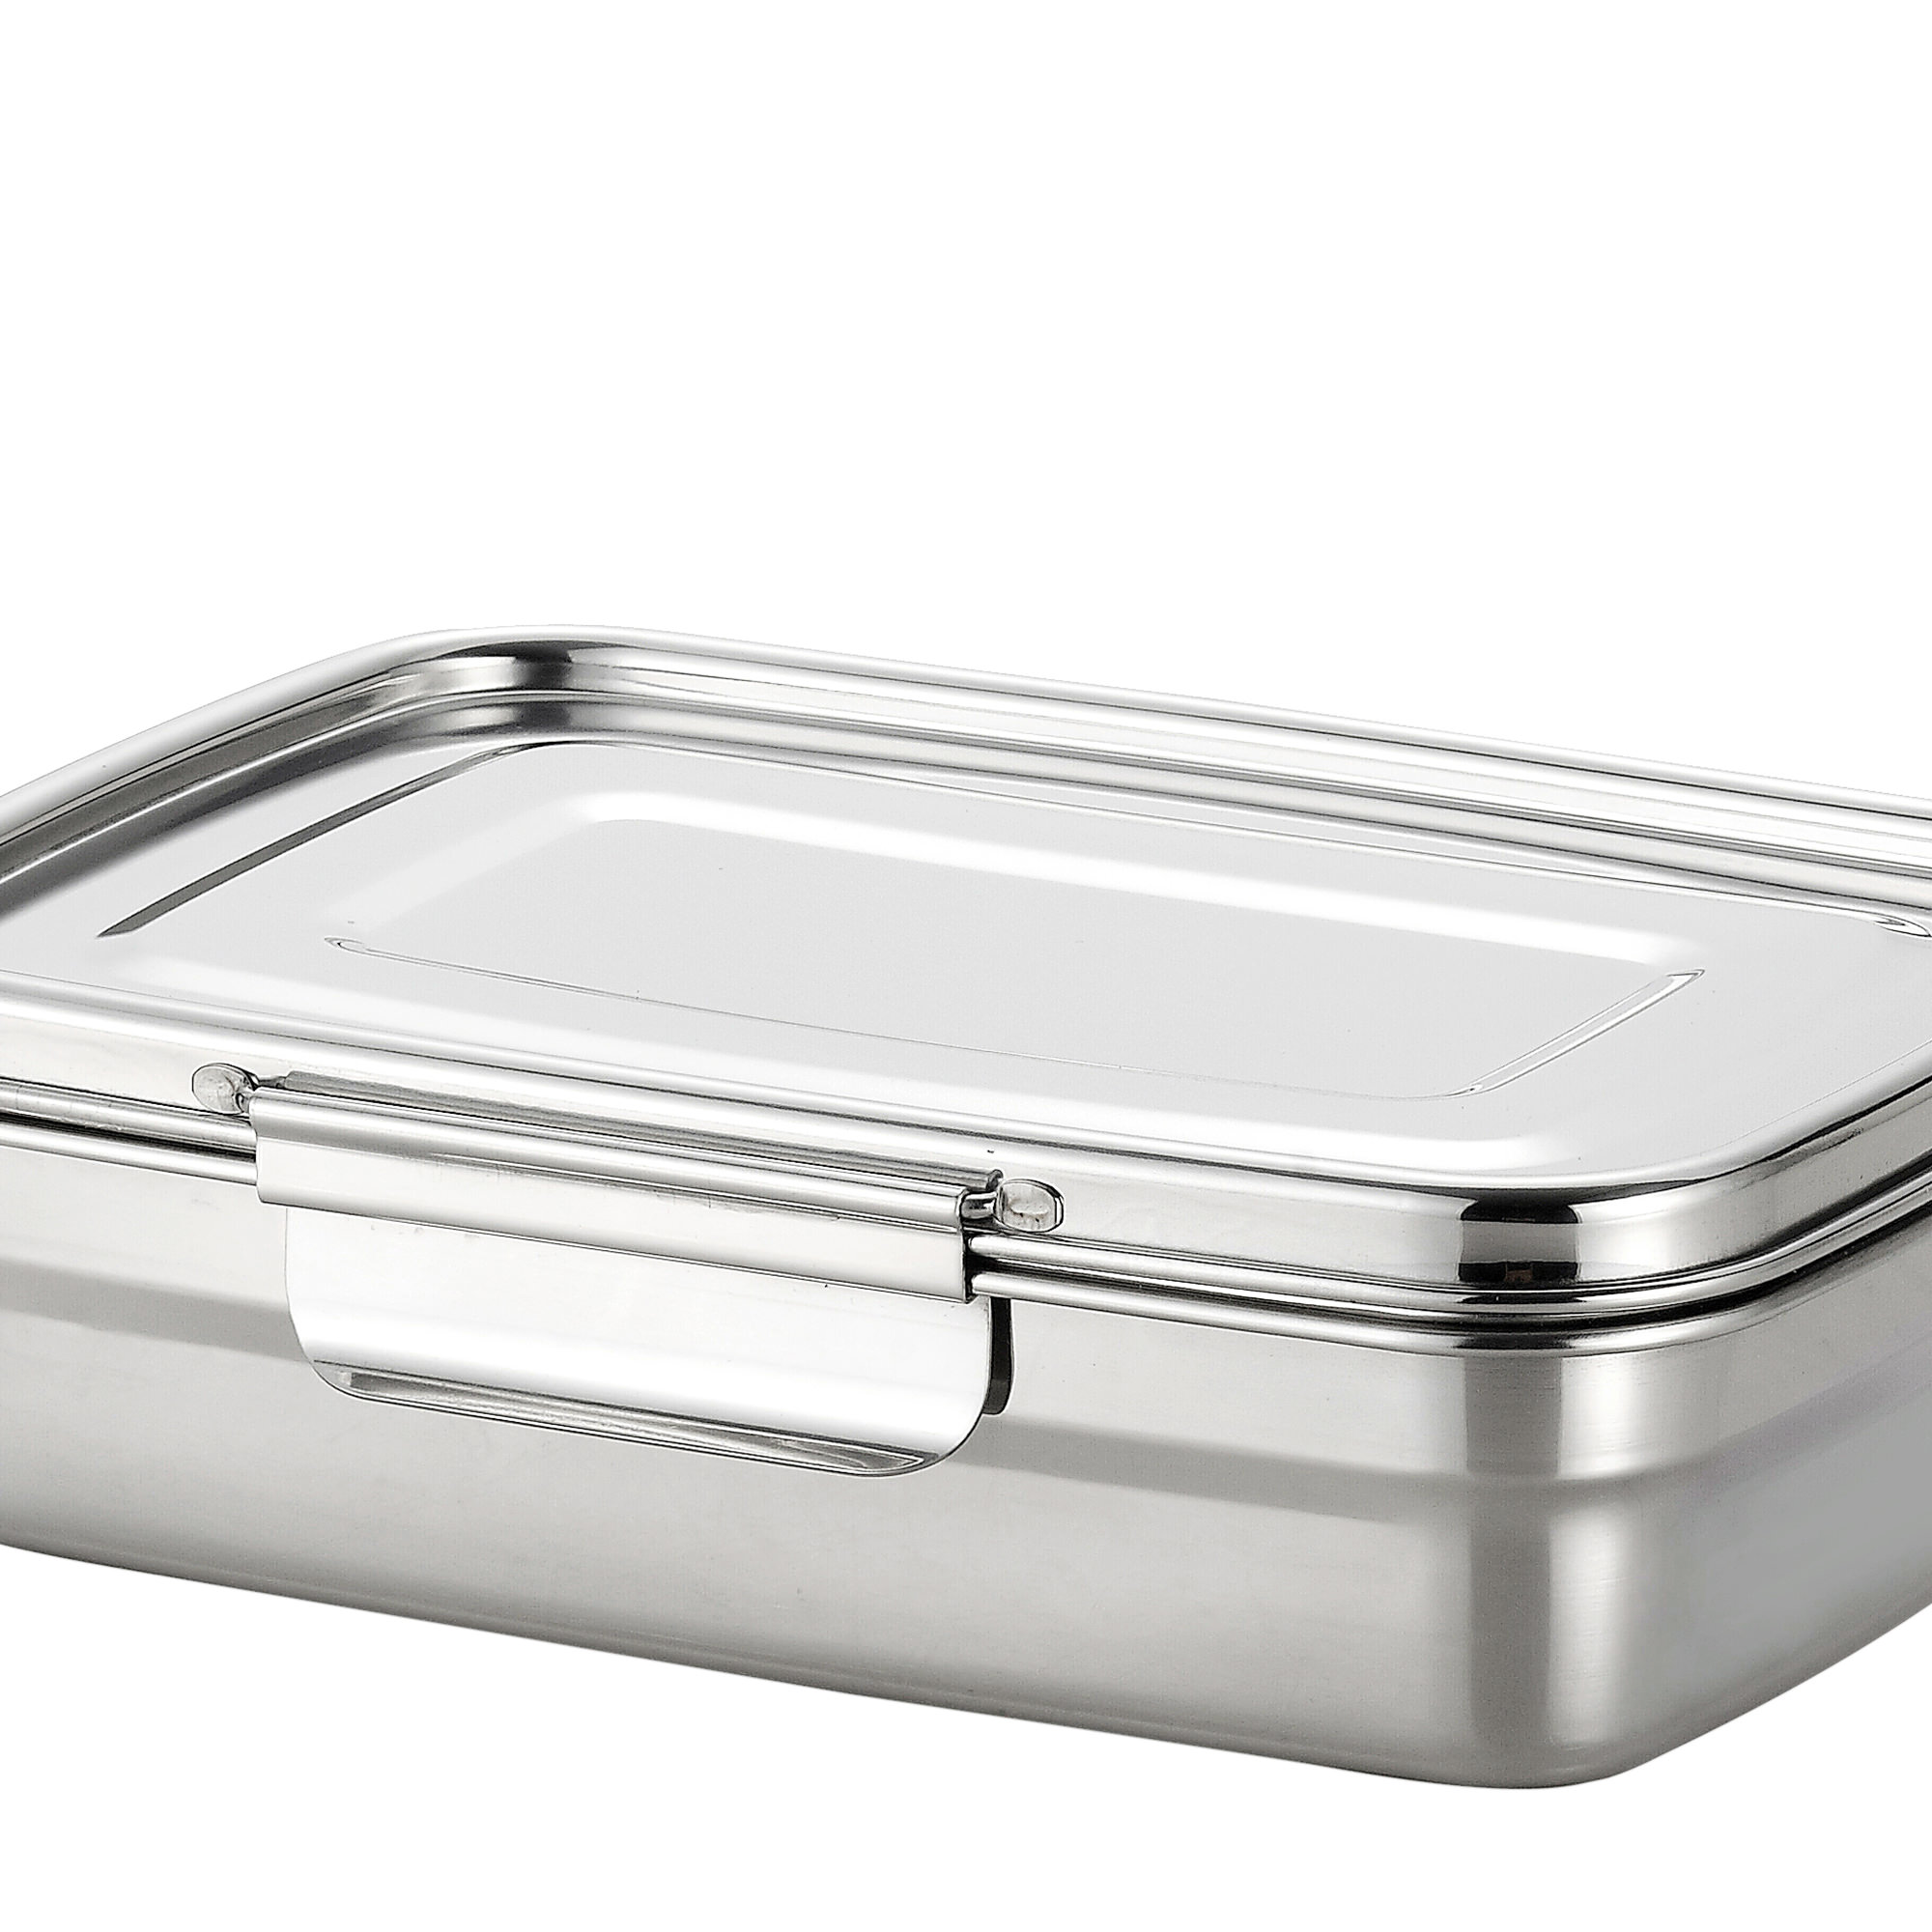 Avanti Dry Cell Stainless Steel Food Container 1.9L image #2